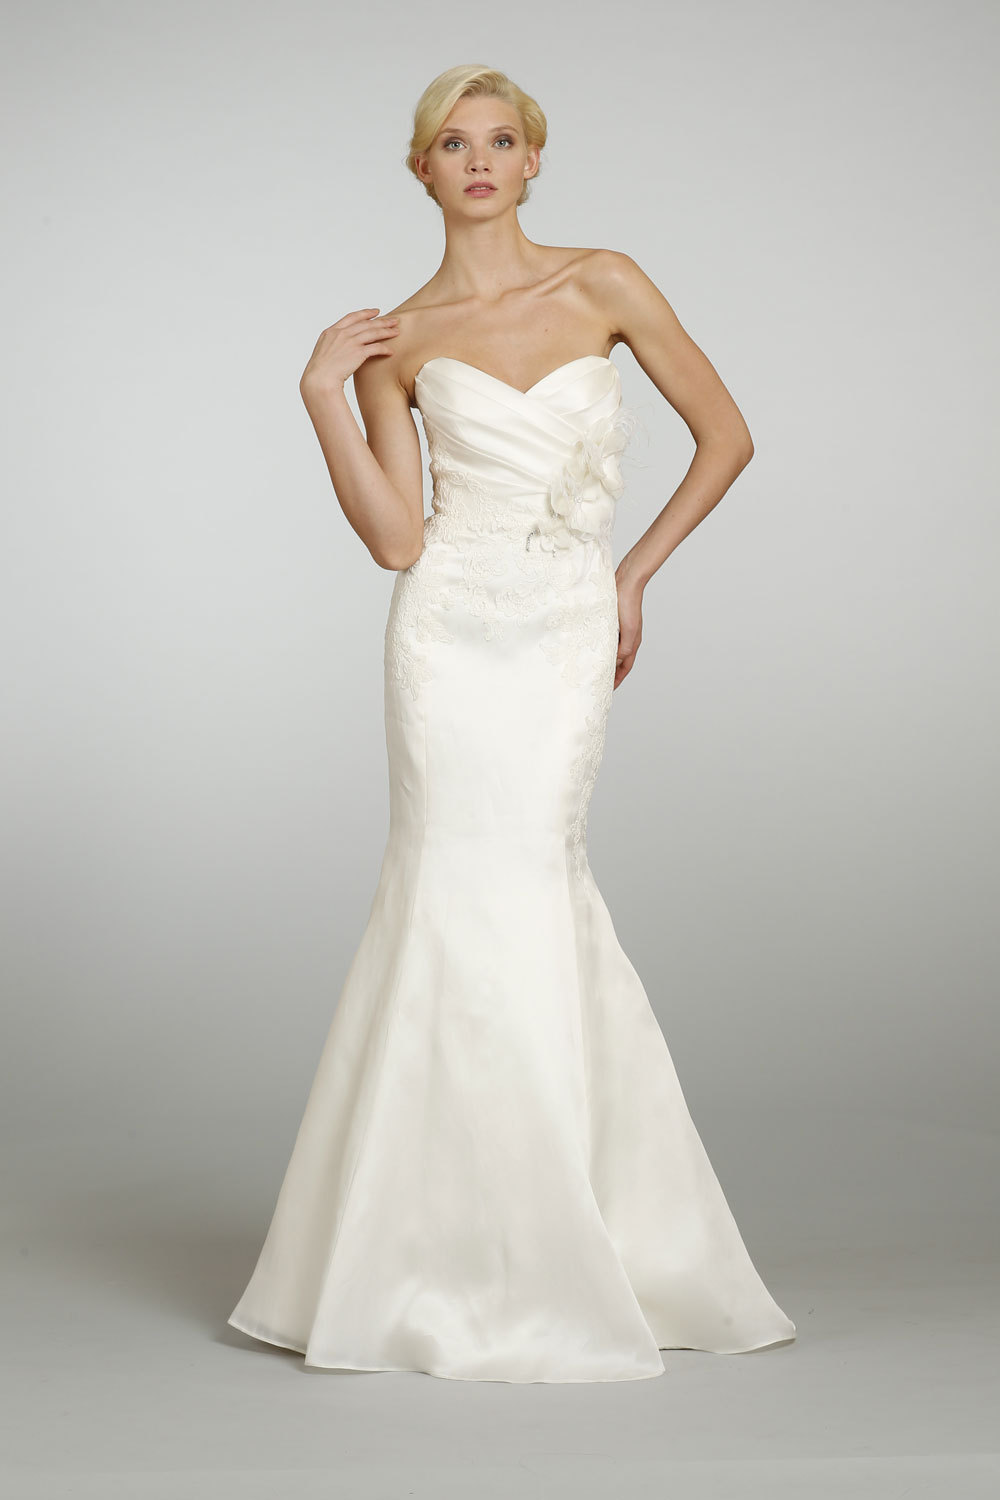 Spring-2013-wedding-dress-alvina-valenta-bridal-9304.full